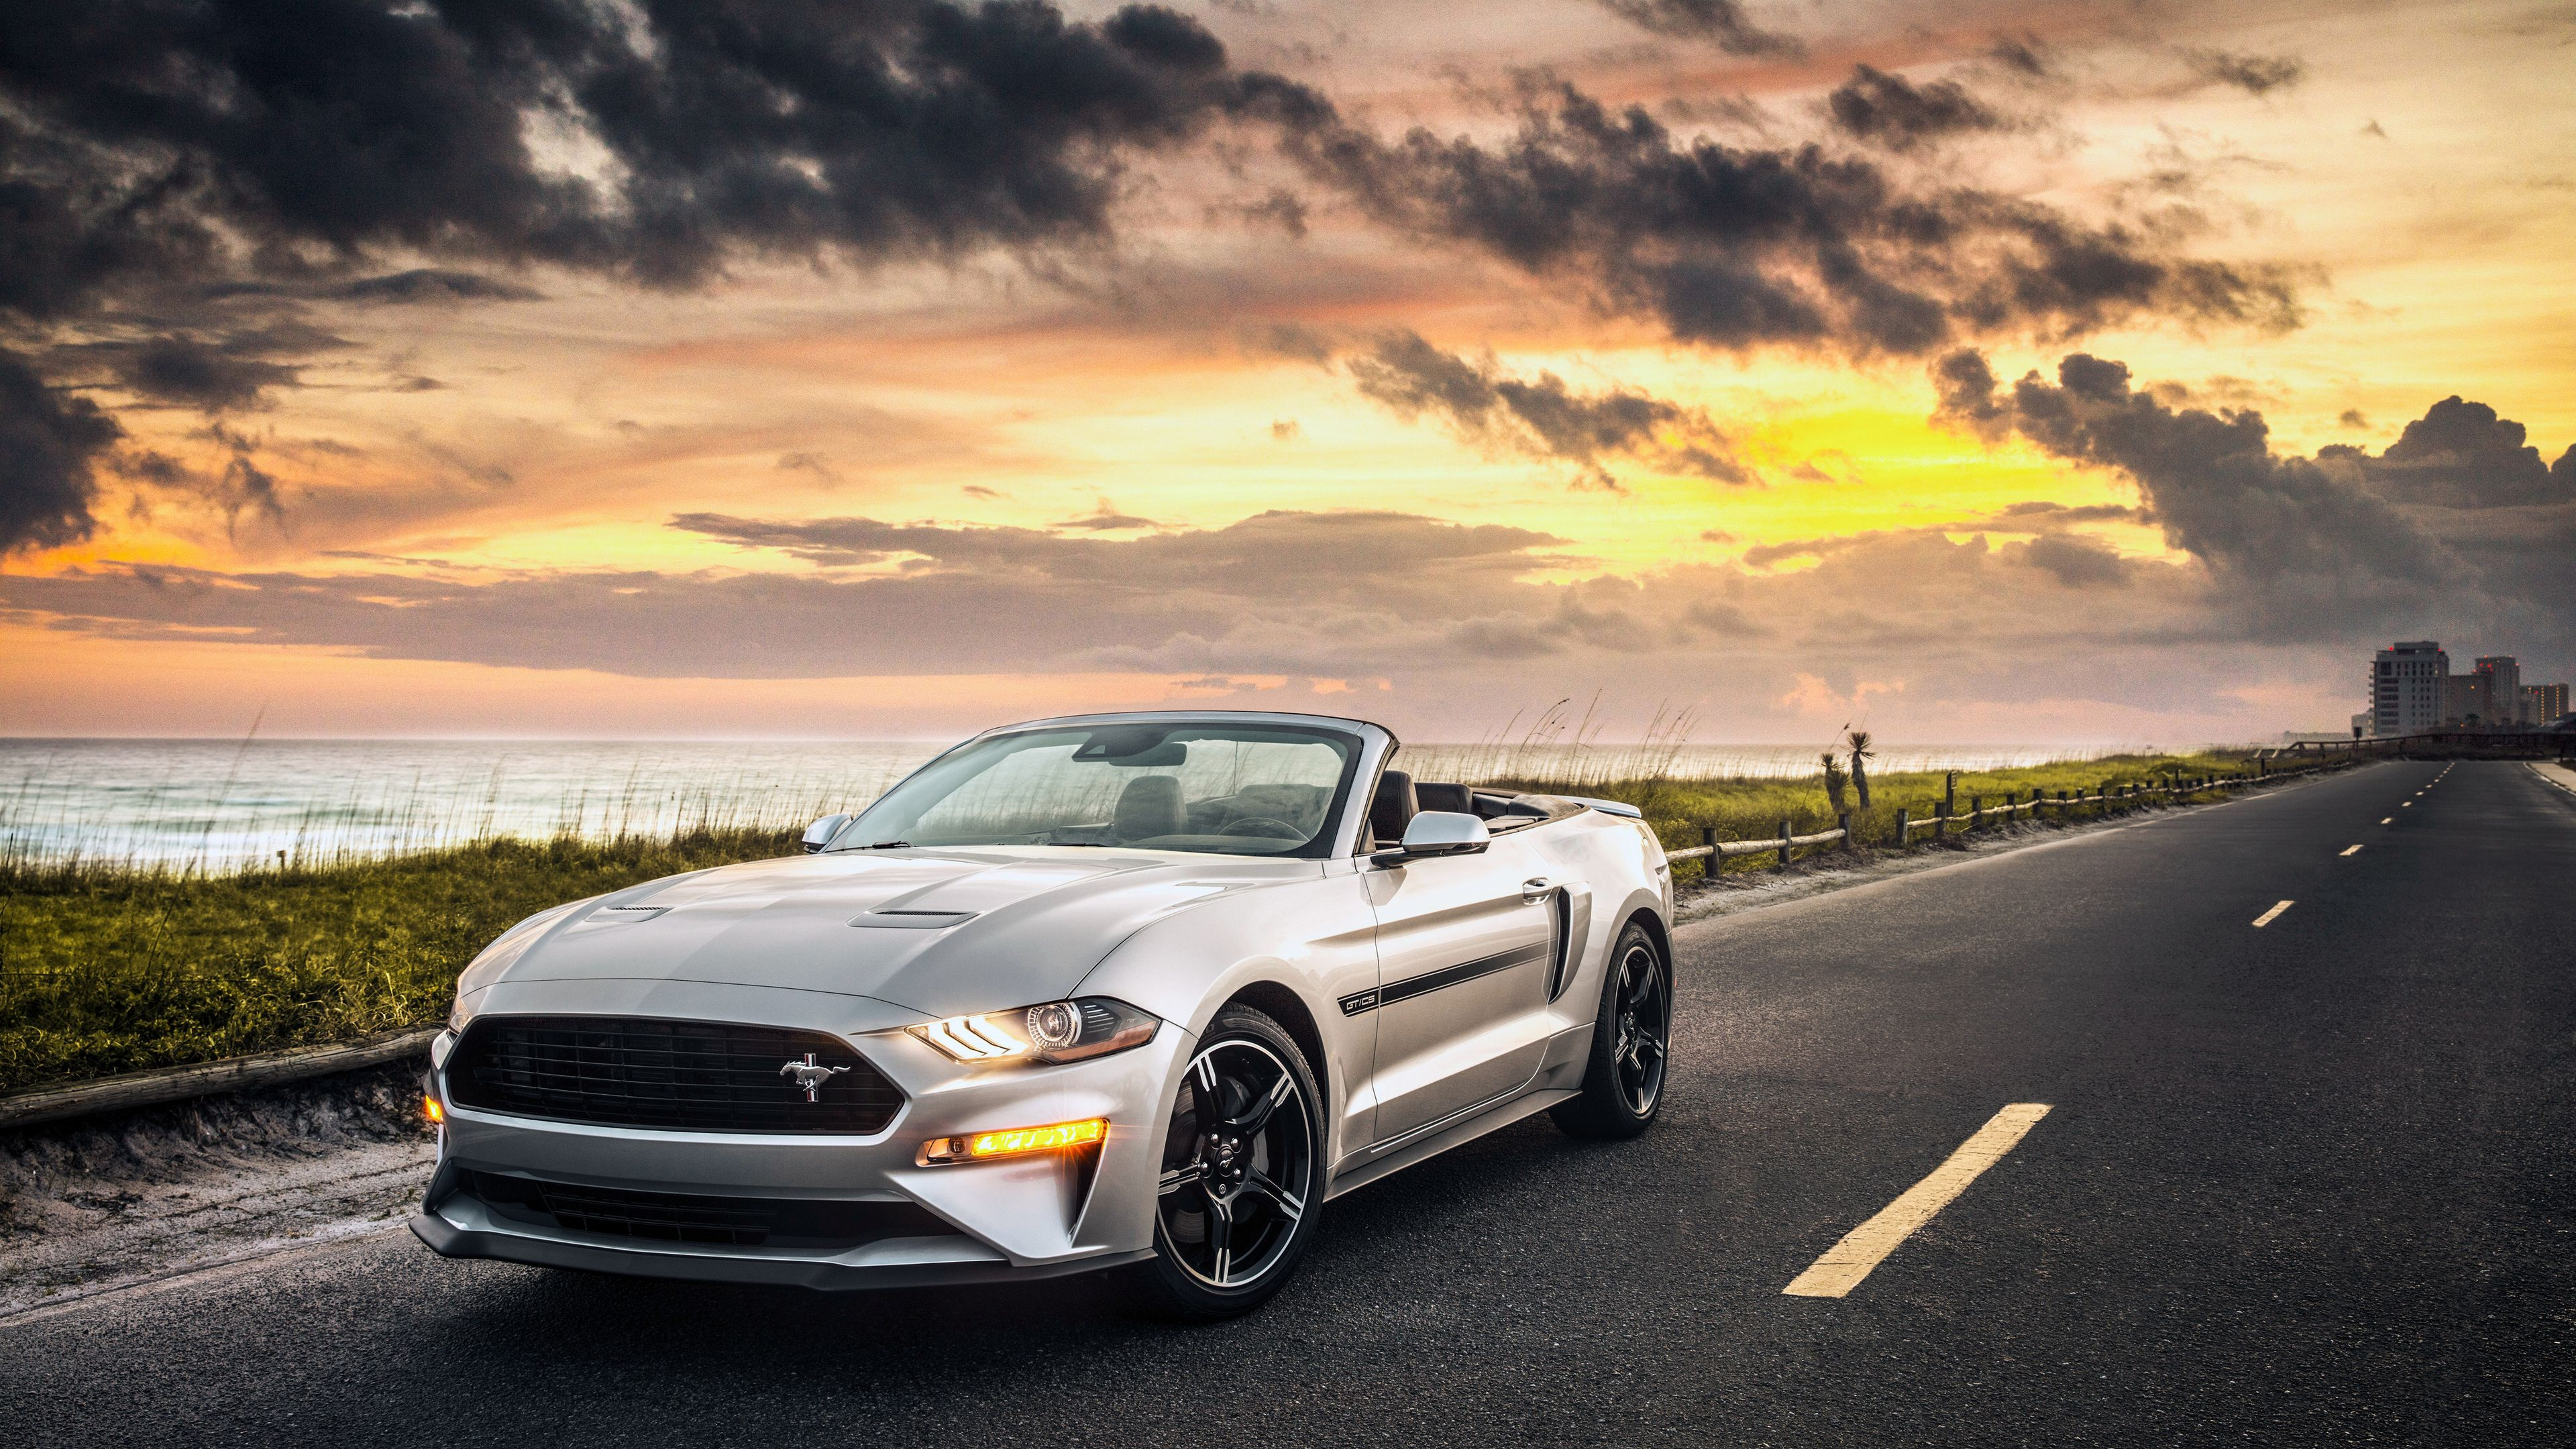 Ford Mustang Gt Convertible 2019 4k Mustang Wallpapers Hd